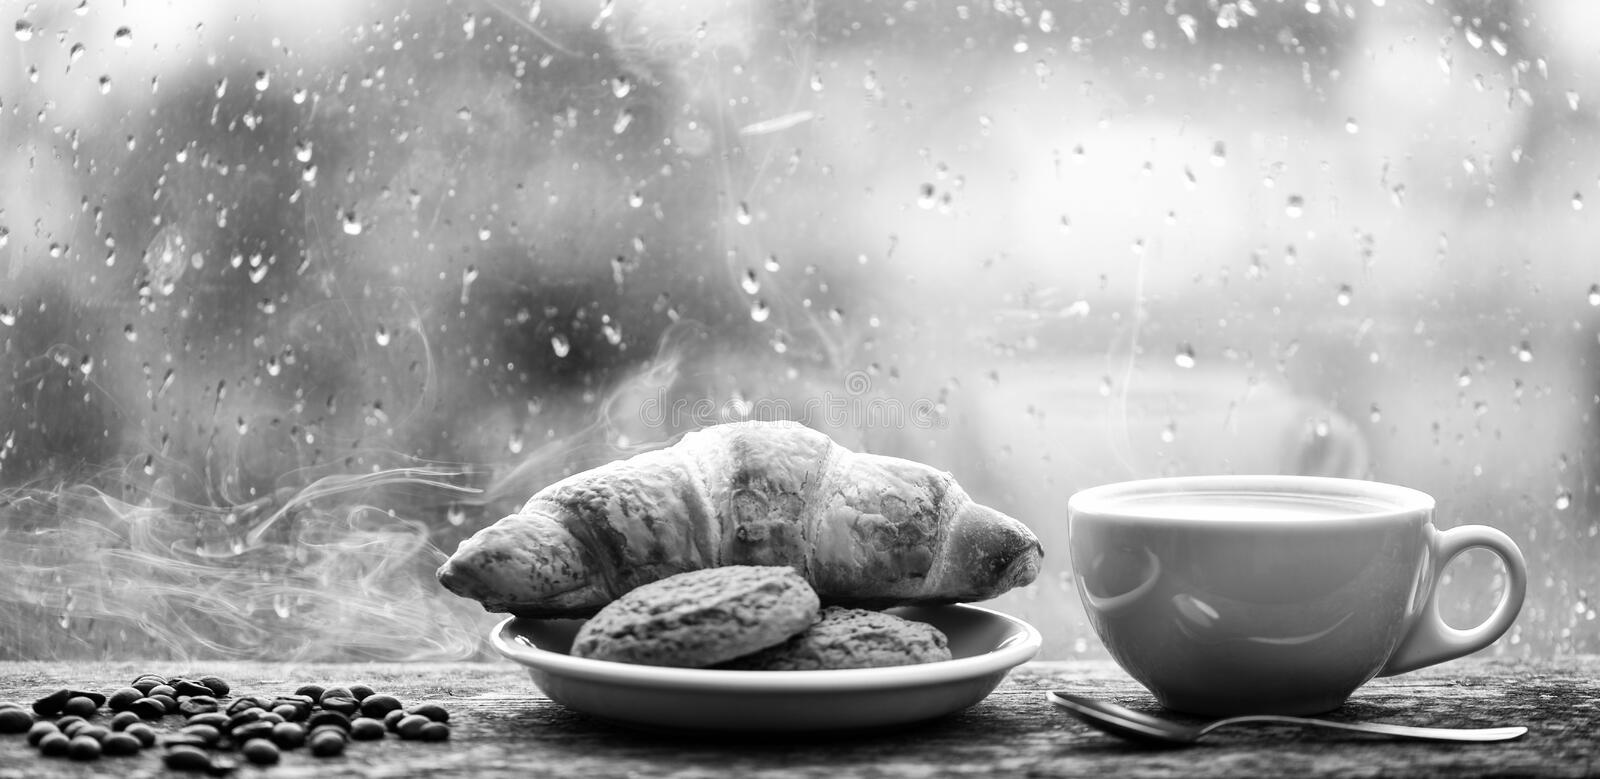 Fresh brewed coffee in white cup or mug on windowsill. Coffee drink with croissant dessert. Enjoying coffee on rainy day stock image